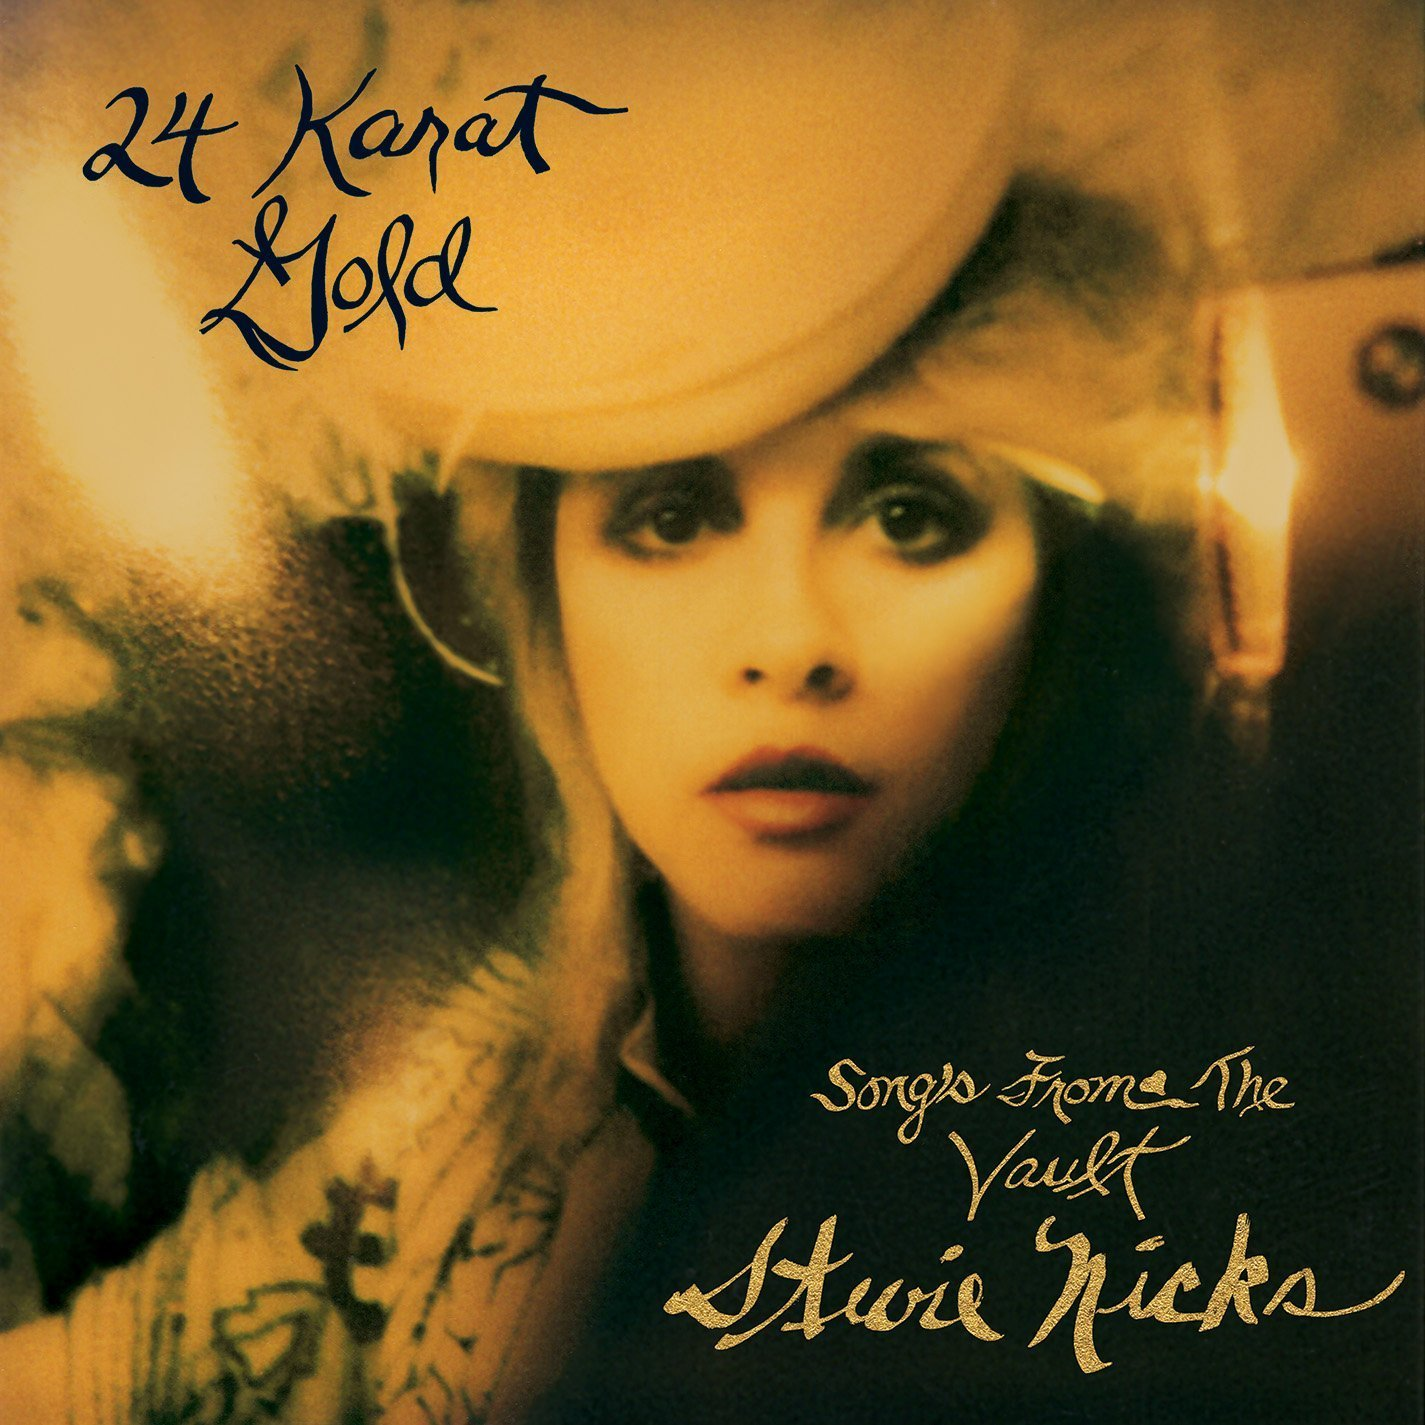 24 Karat Gold – Songs from the Vault by Stevie Nicks image